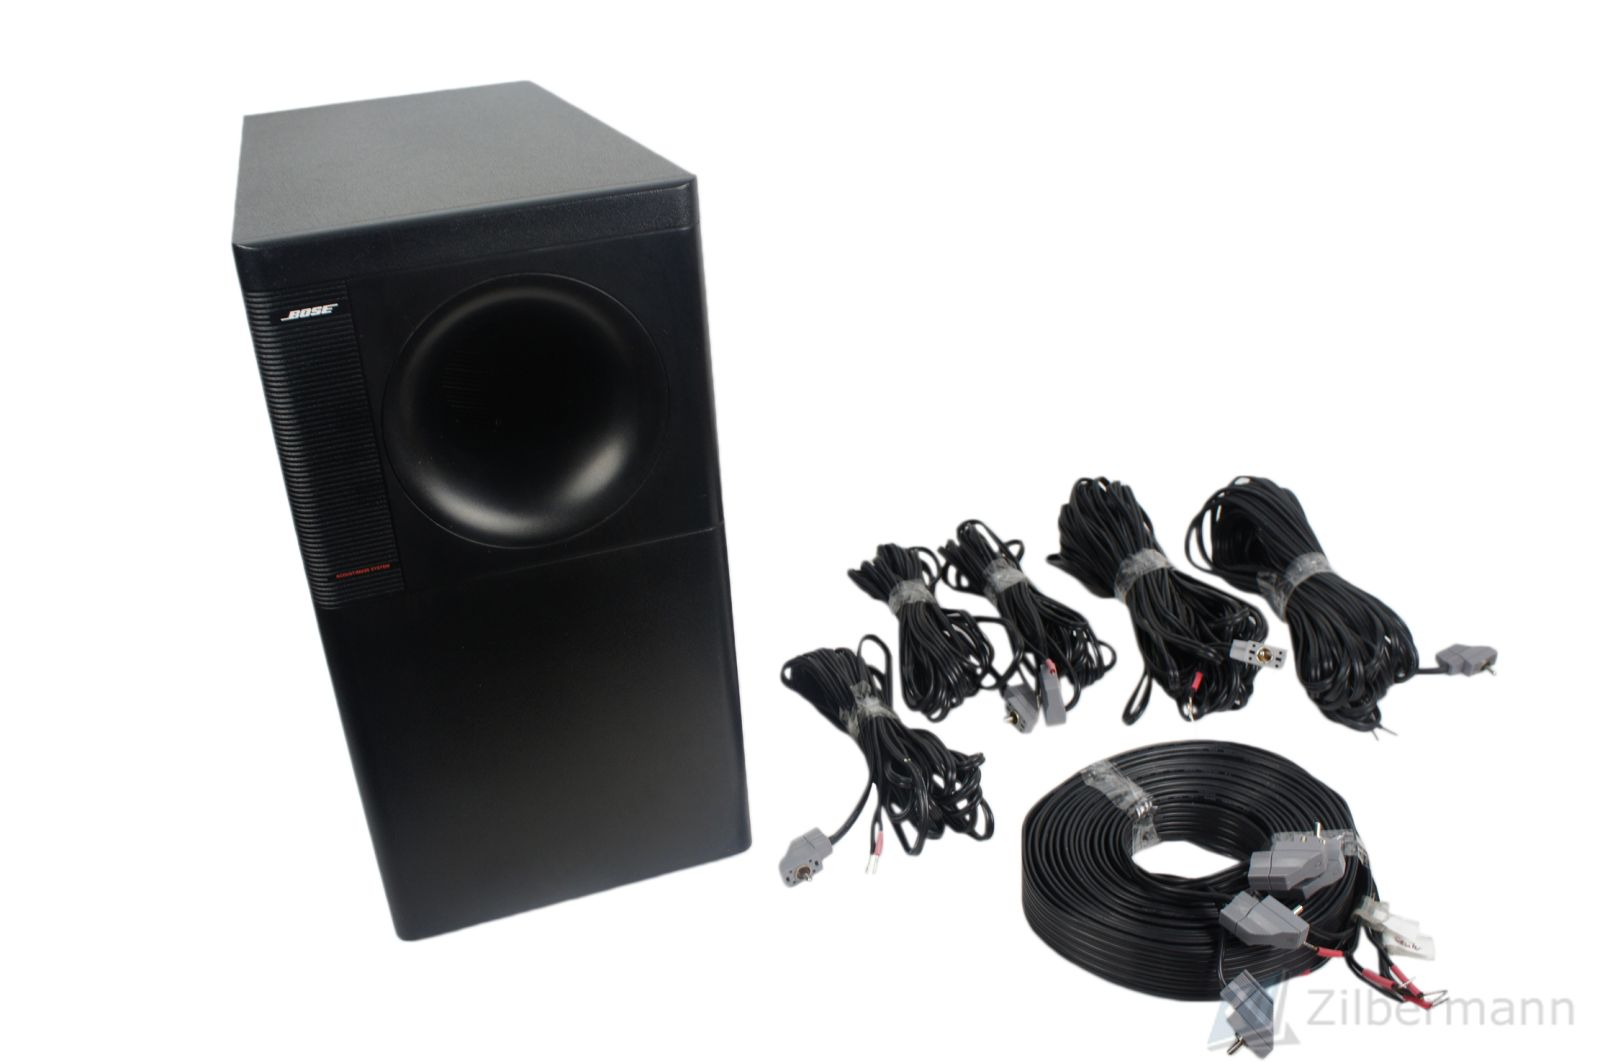 Bose_Acoustimass_6_Series_II_Heimkino-System_Subwoofer